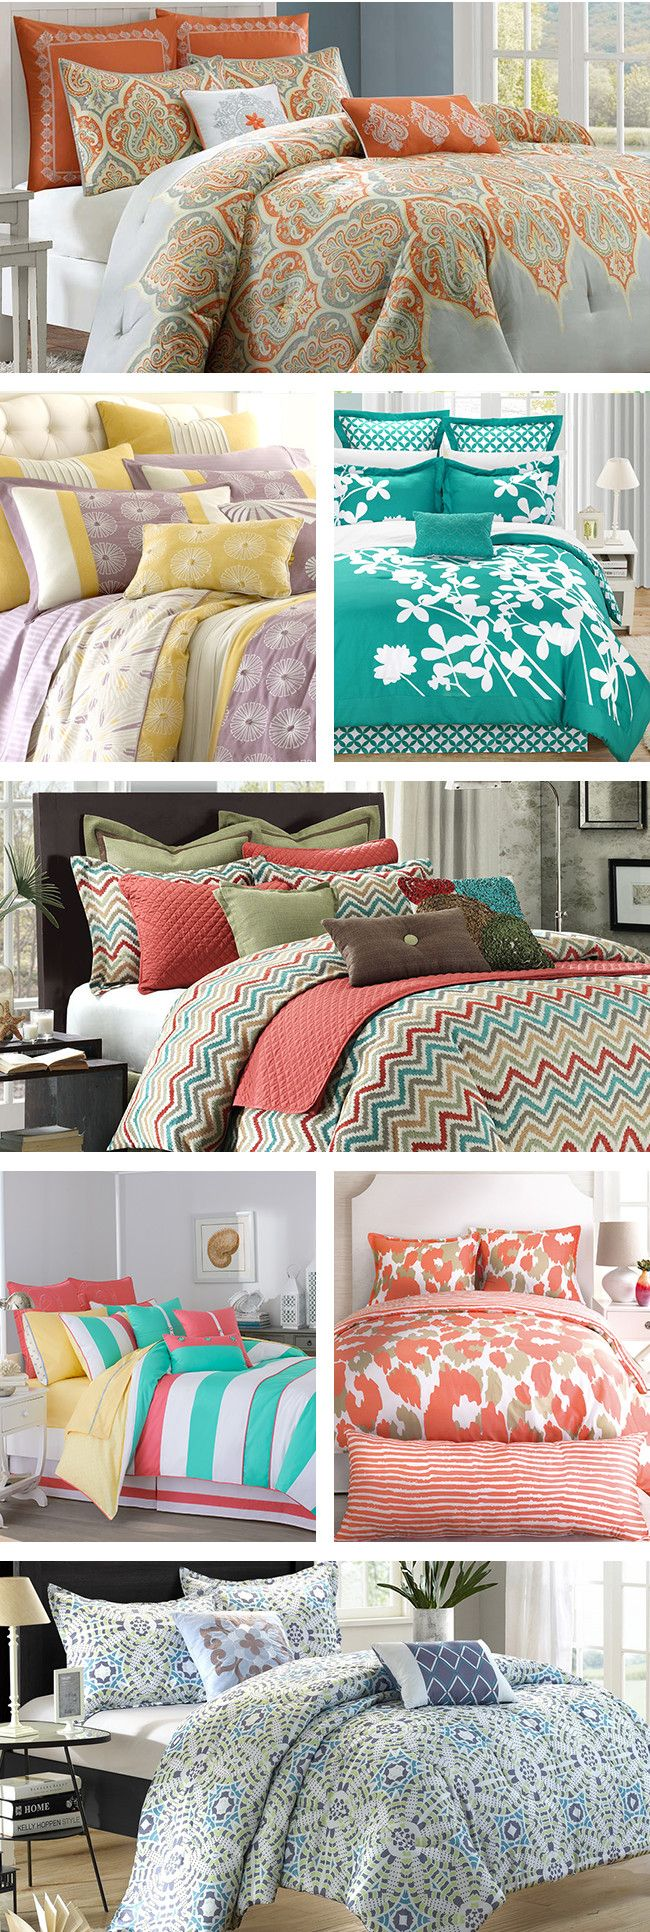 We spend a lot of time sleeping, so it's important to invest in a bedding set that is appropriate for different temperatures throughout the seasons. Besides considerations like thread count, make sure you think about the fun stuff like colors and patterns. Visit Wayfair and sign up today to get access to exclusive deals everyday up to 70% off. Free shipping on all orders over $49.